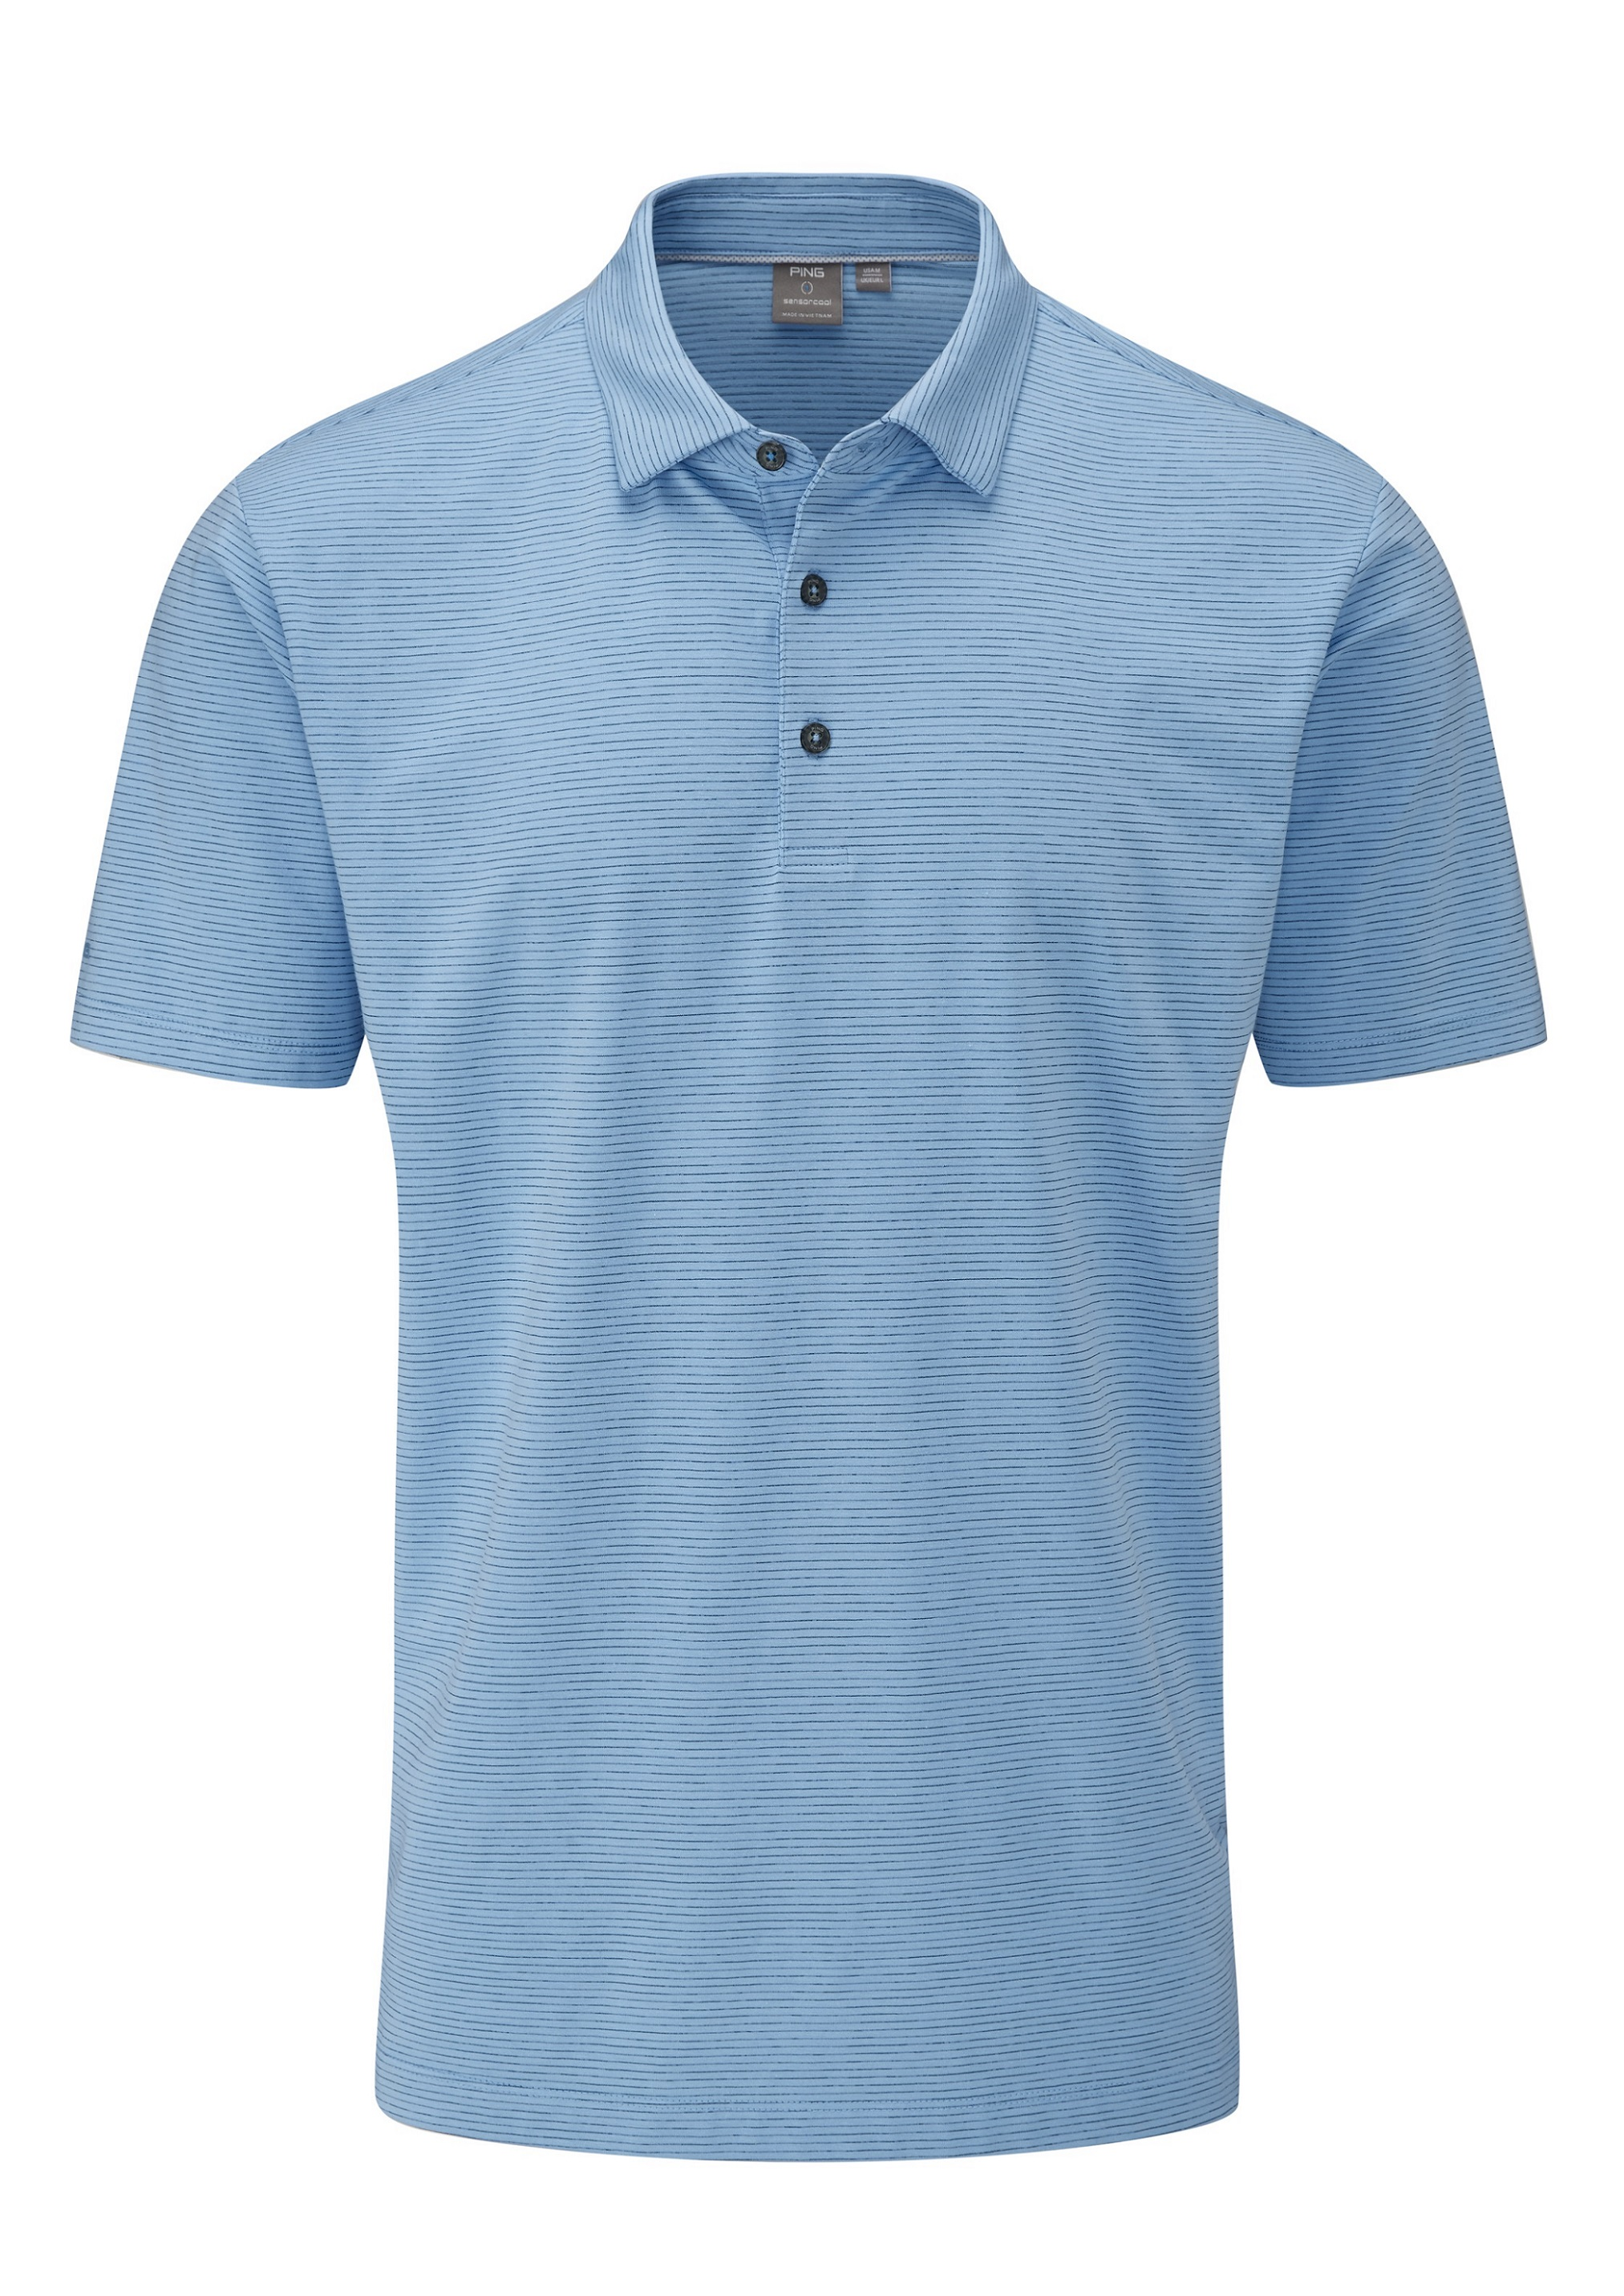 Svalkande vår/sommar-kollektioner från Ping - Raymond. Sensor Cool Cotton engineered with COOLMAX® fabric. Heathered stripe performance polo with permanent moisture-moving properties and a natural soft-cotton feel. Concealed button-down collar. Engineered to keep golfers cool and dry.